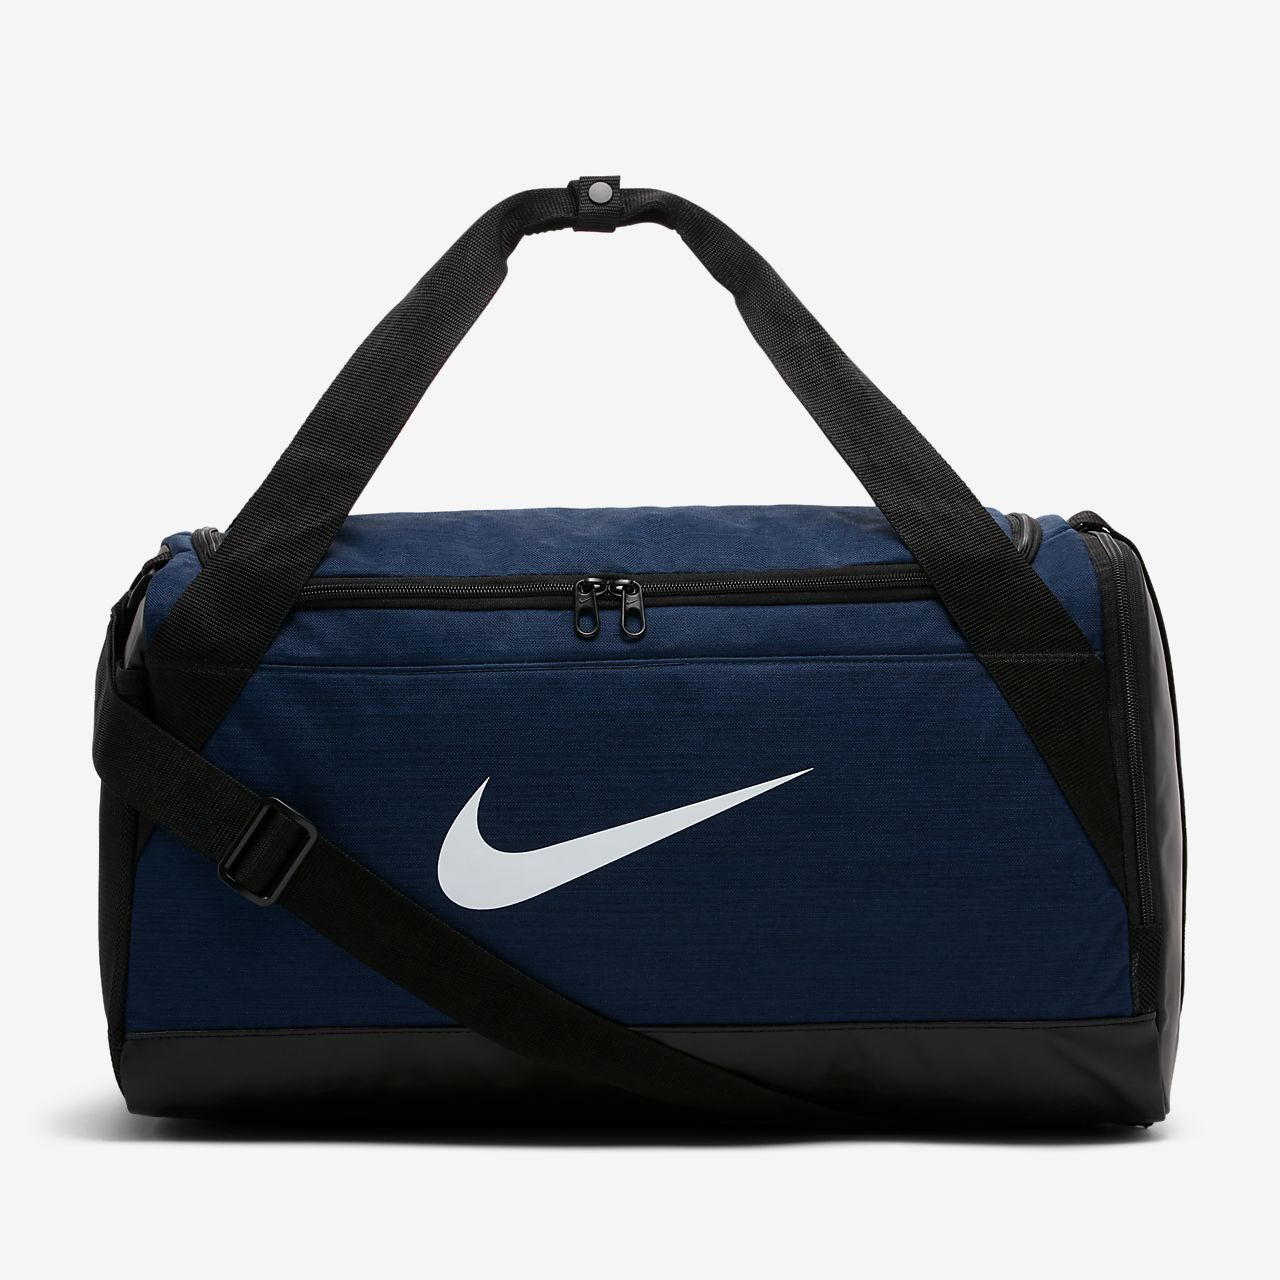 eb534d38b Nike Brasilia (Small) Training Duffel Bag. Nike.com AU